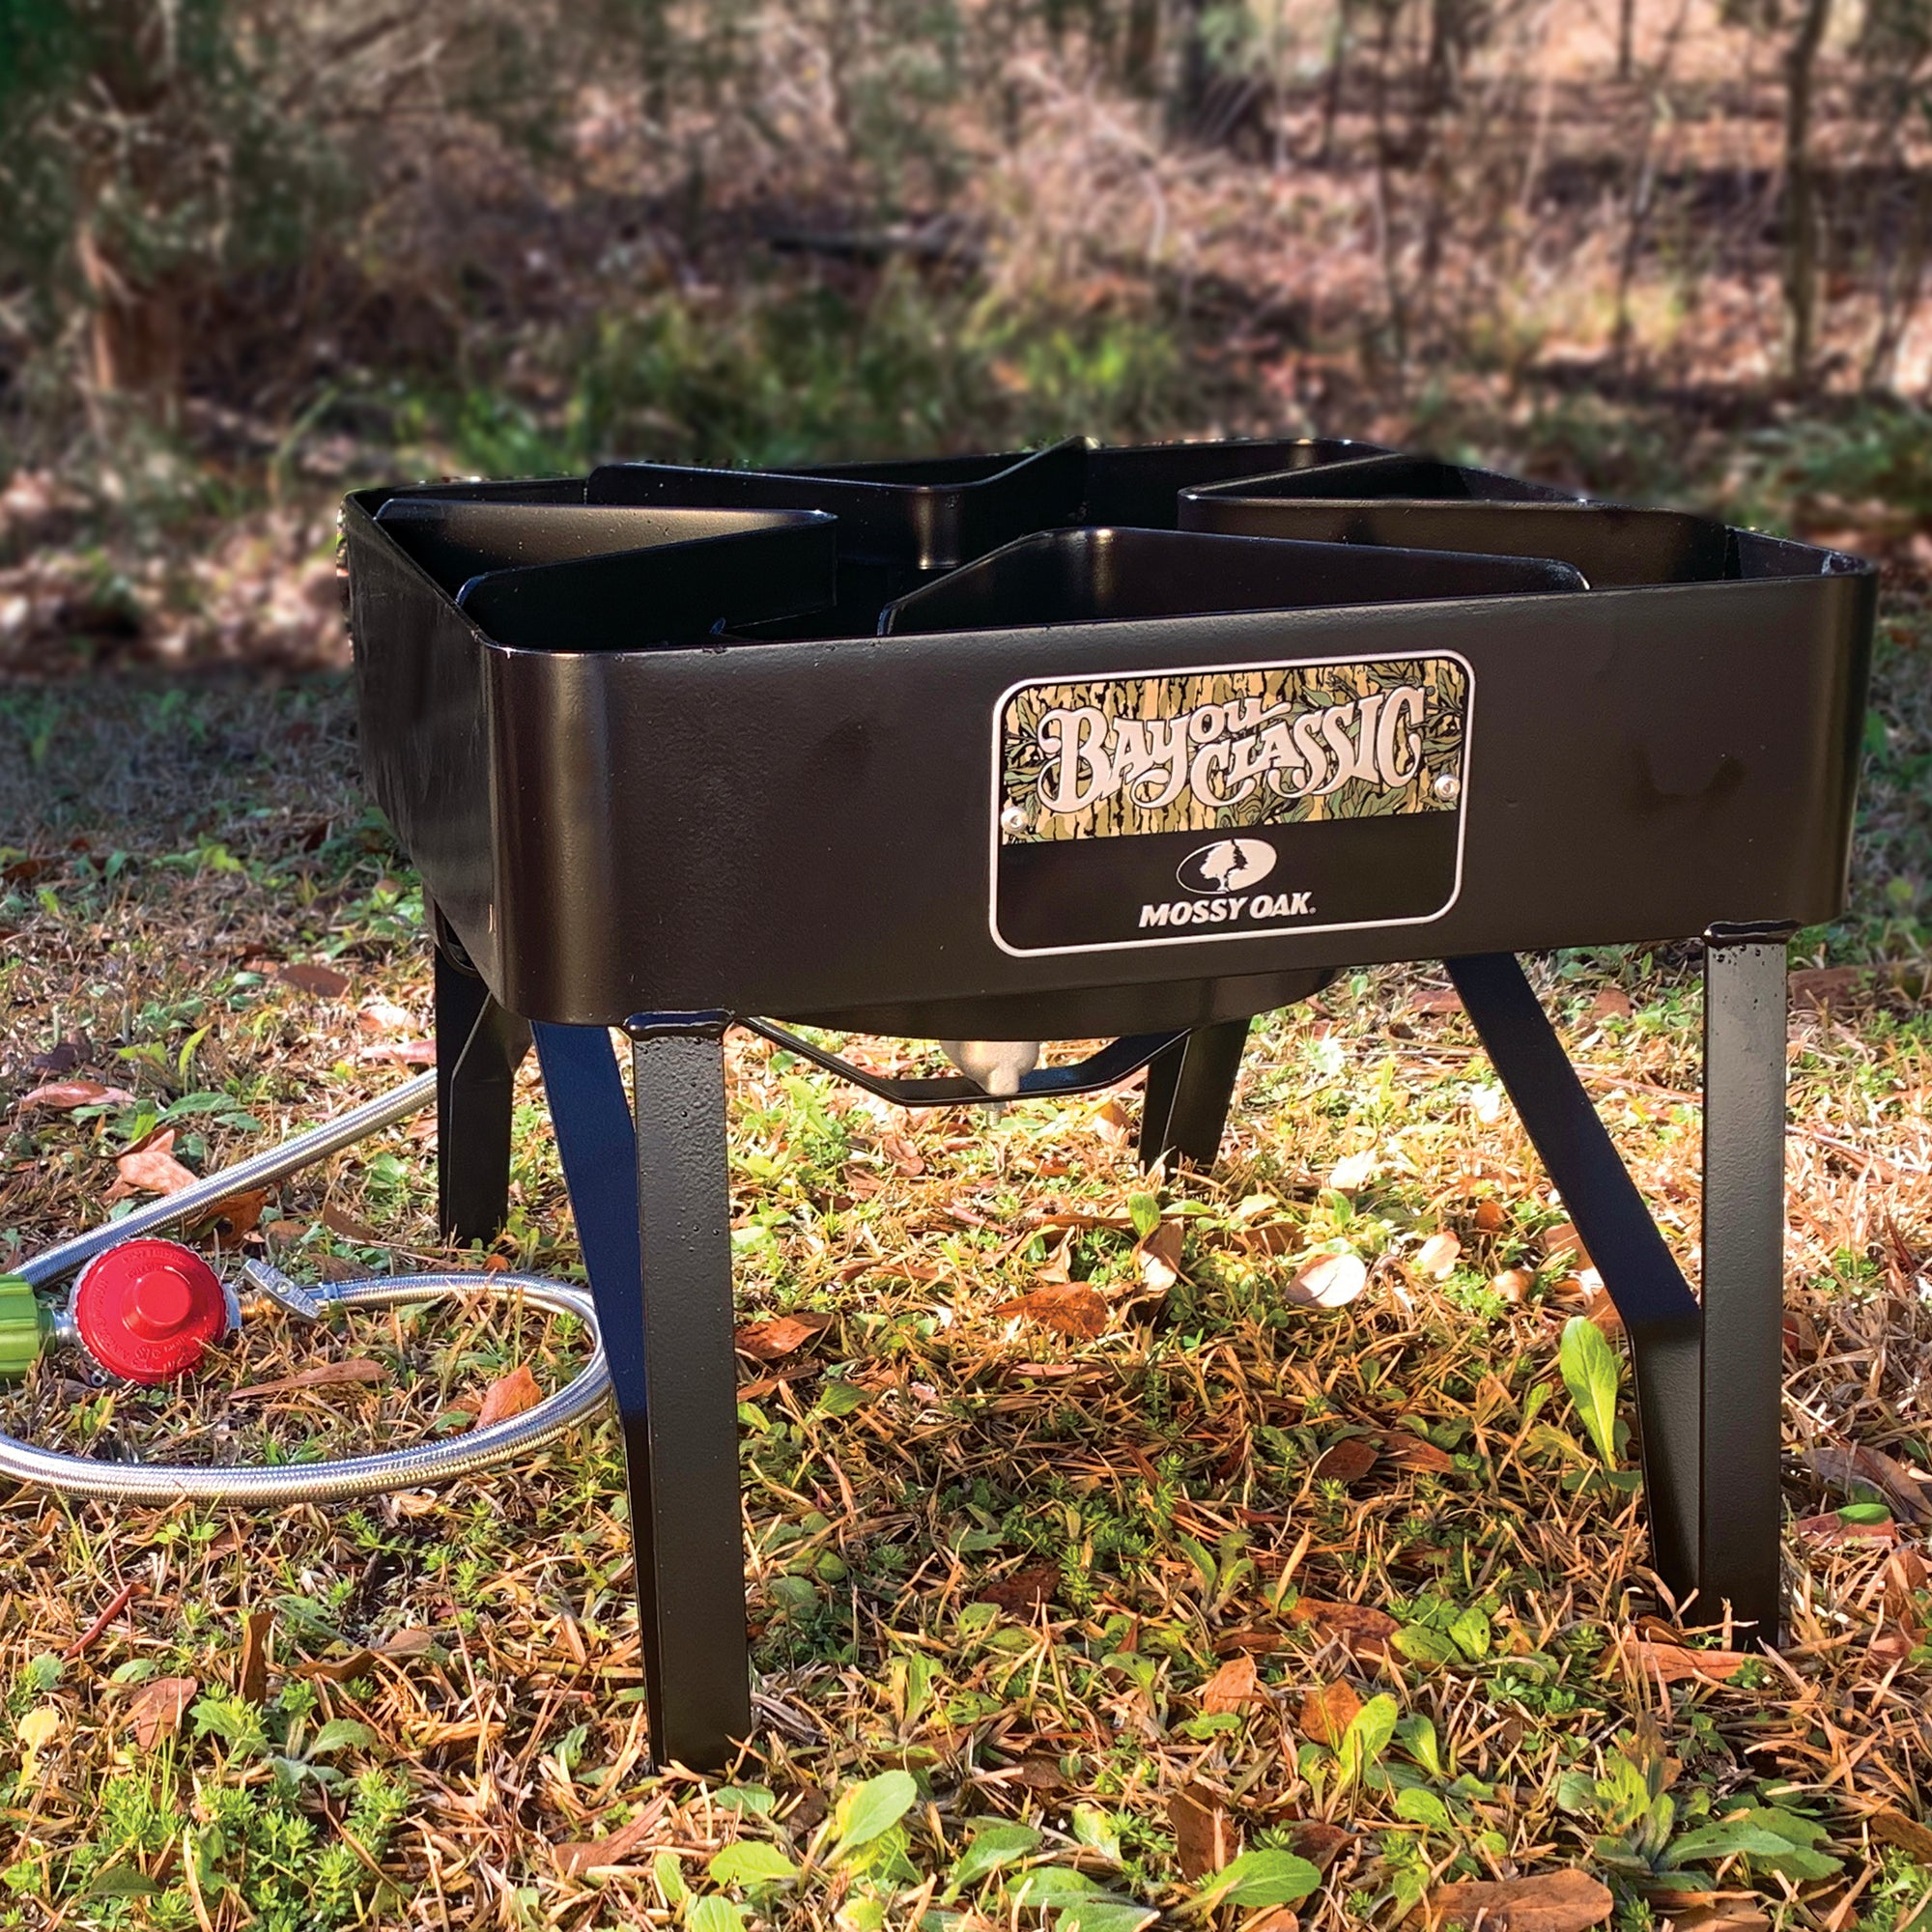 Mossy Oak Outdoor Cooker